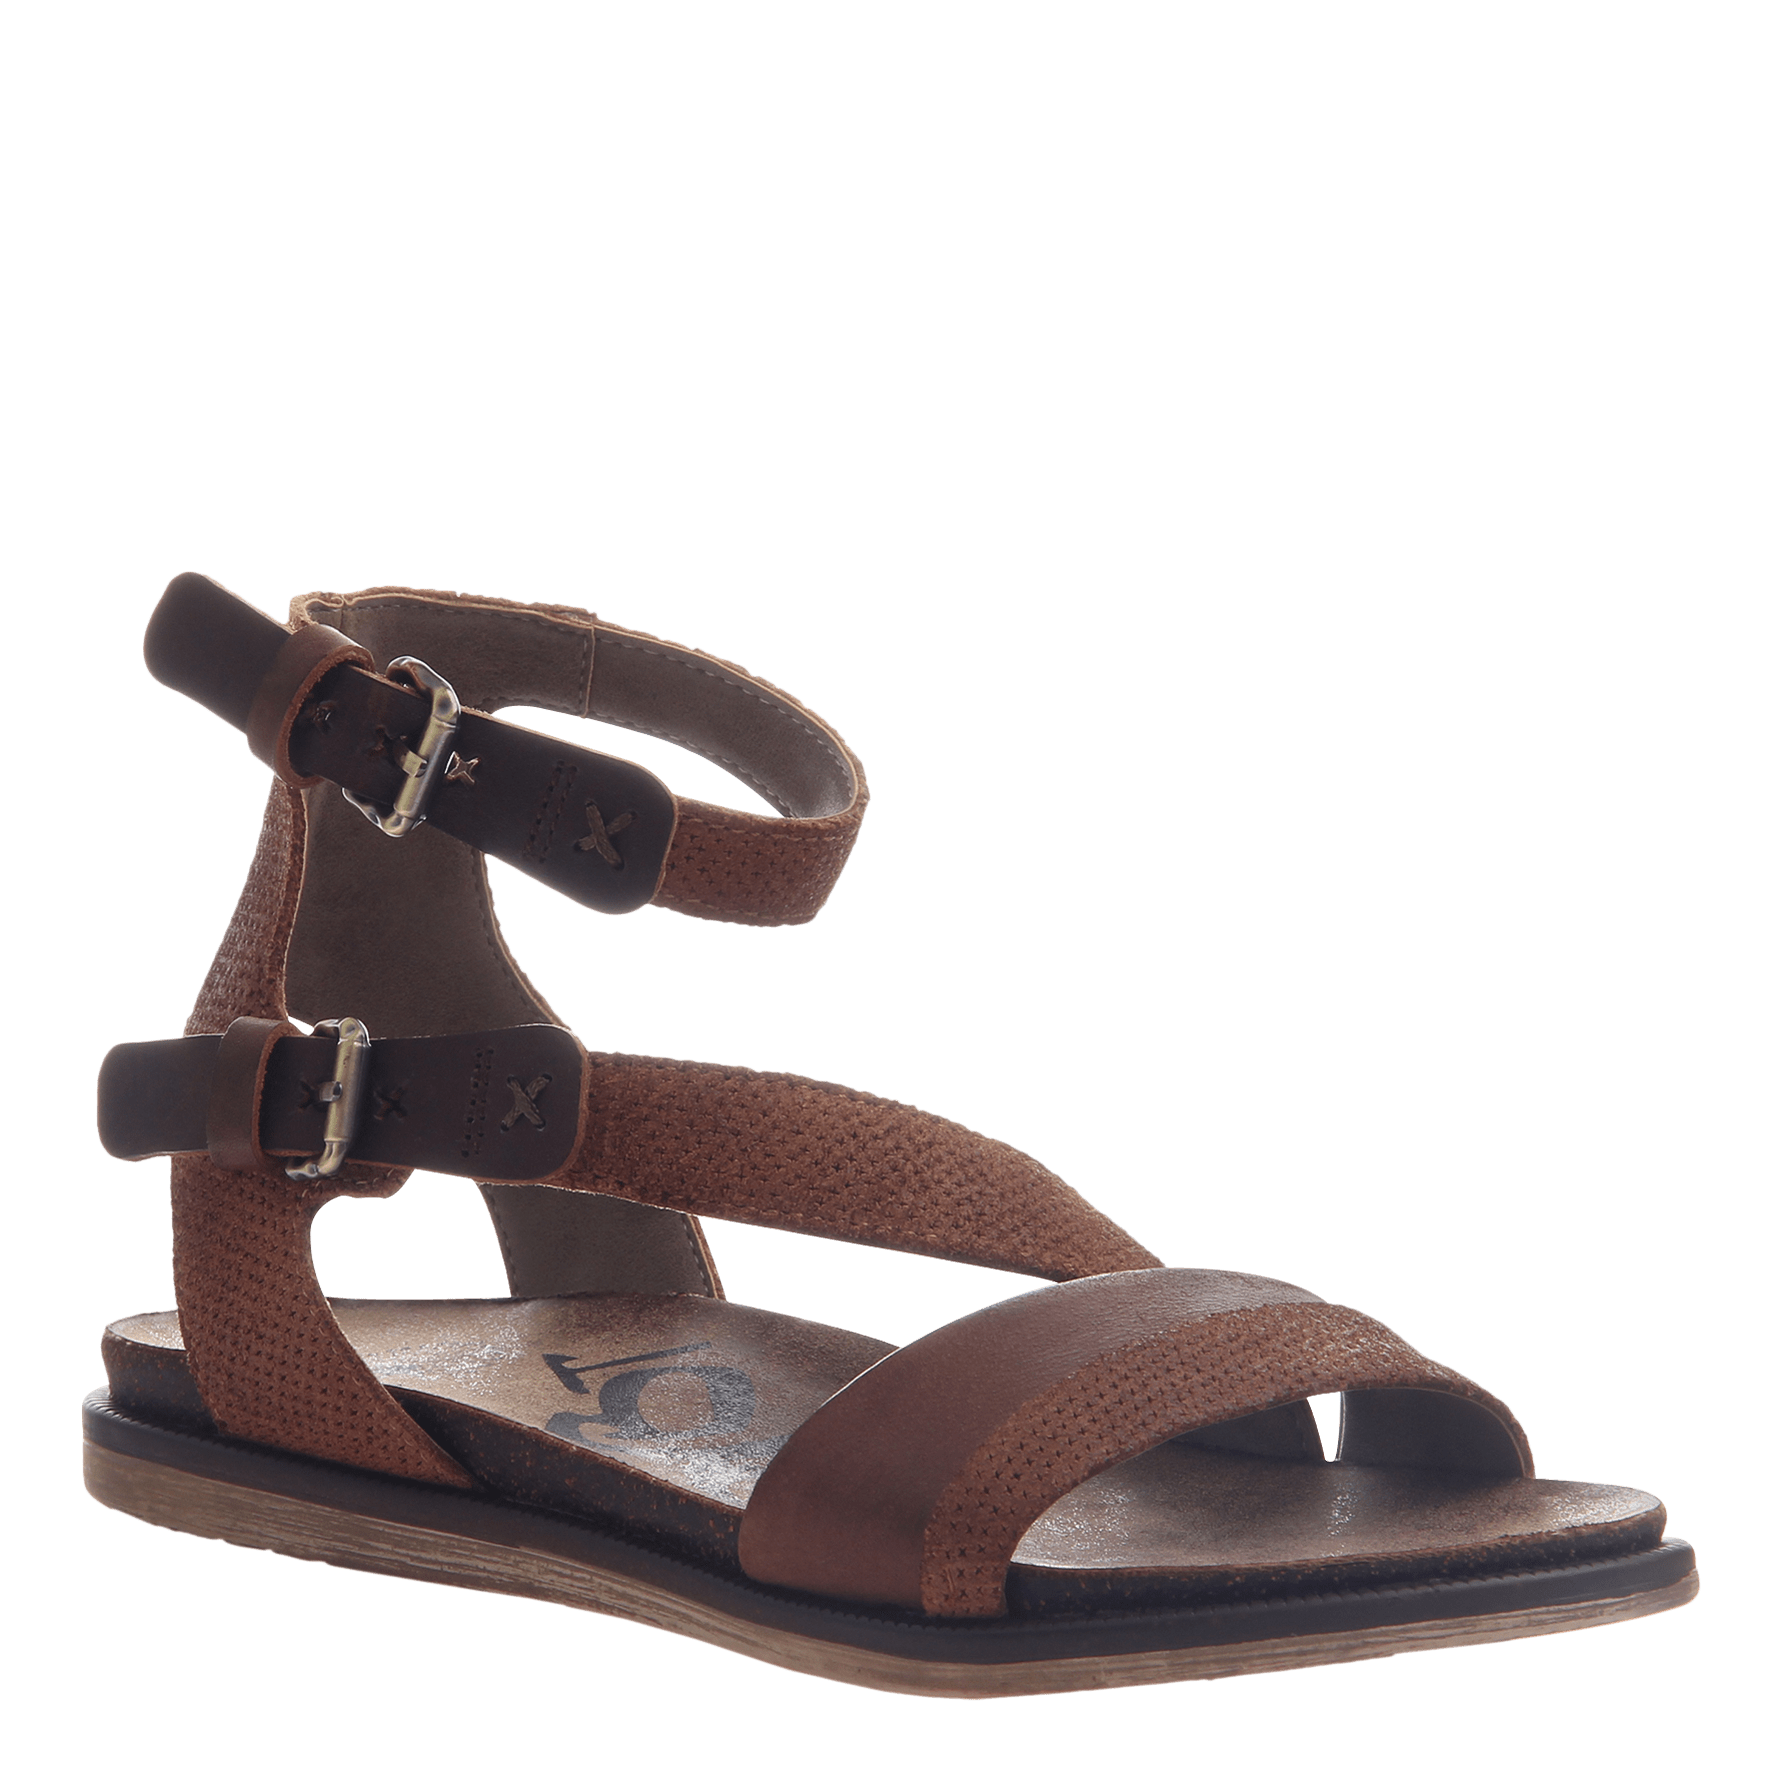 March On women's sandal in Tuscany